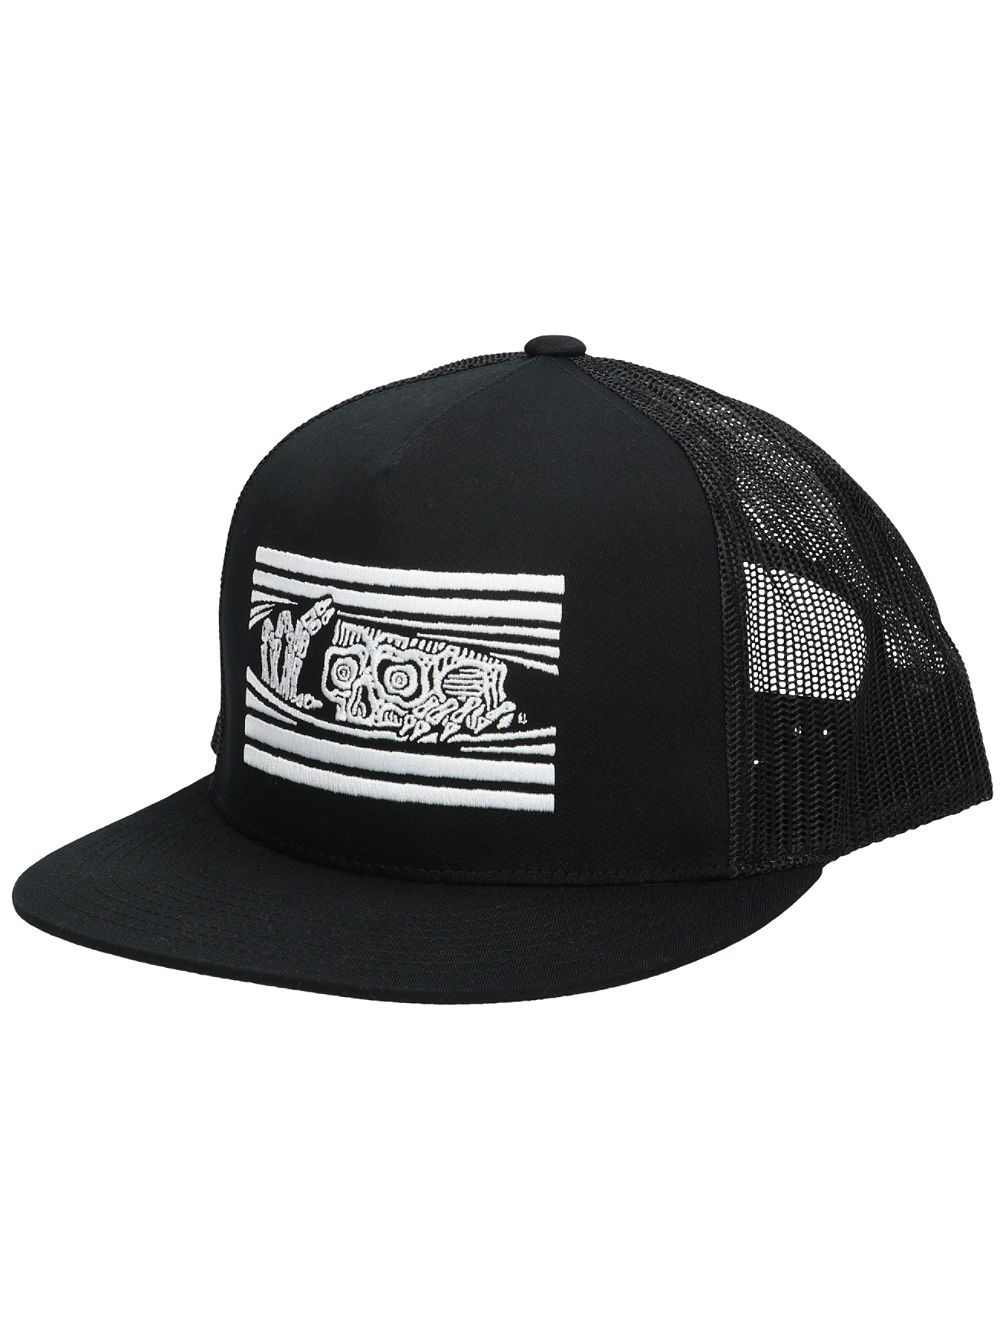 BK Peeking Trucker Cap